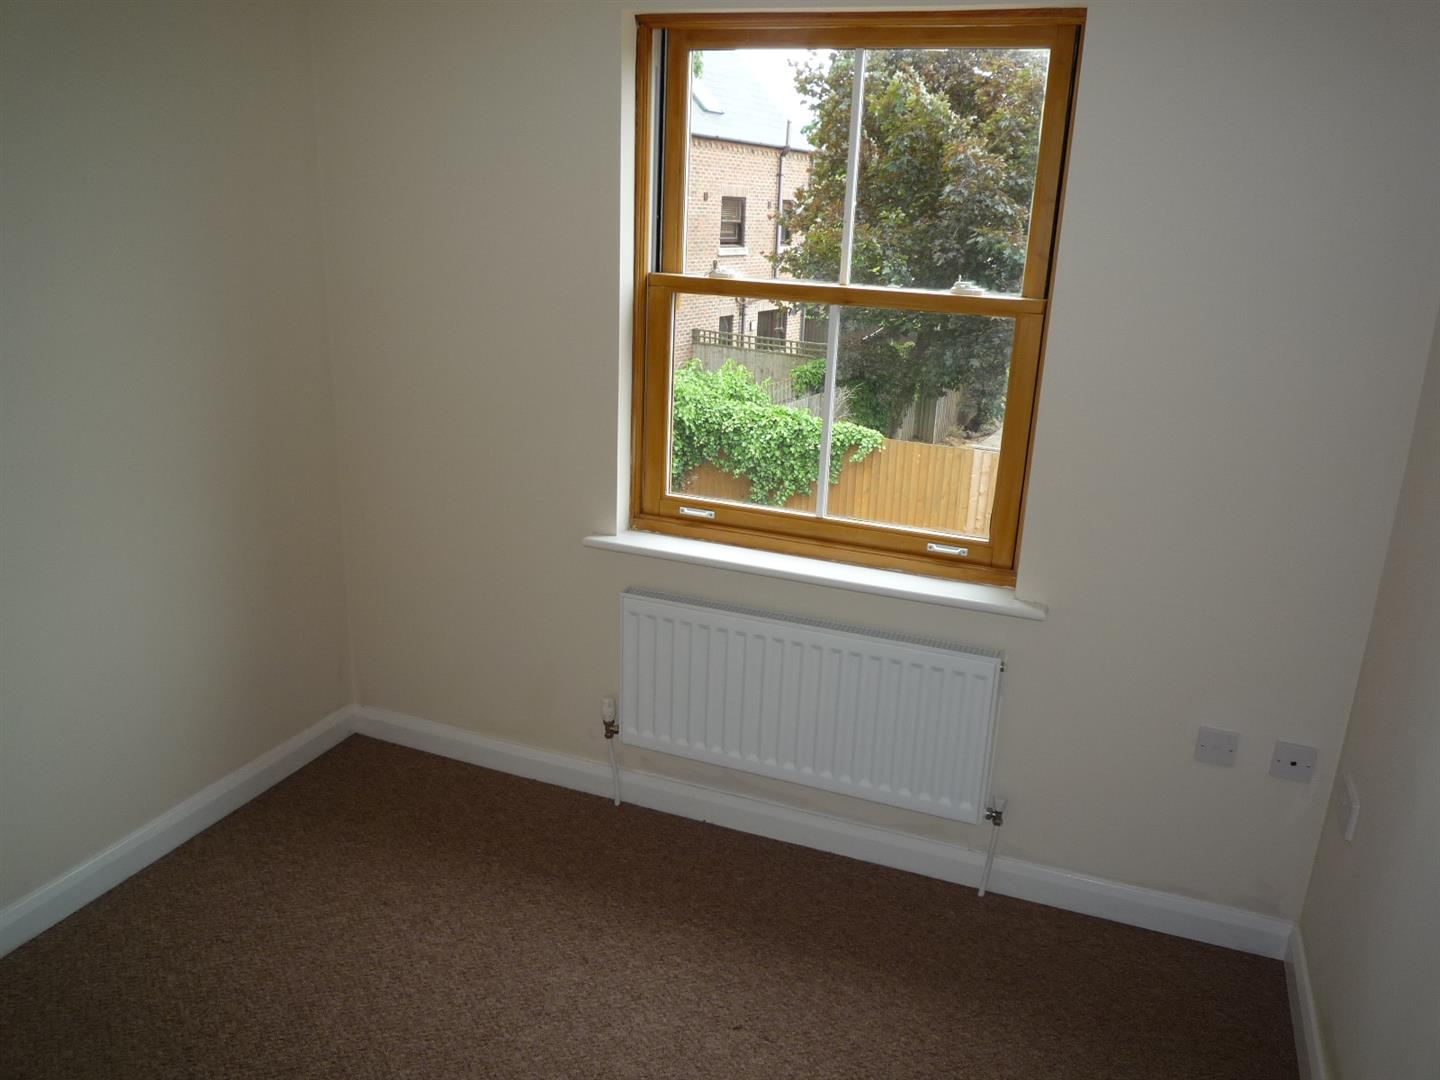 3 bed house to rent in Holbeach Spalding, PE12 7DR 5